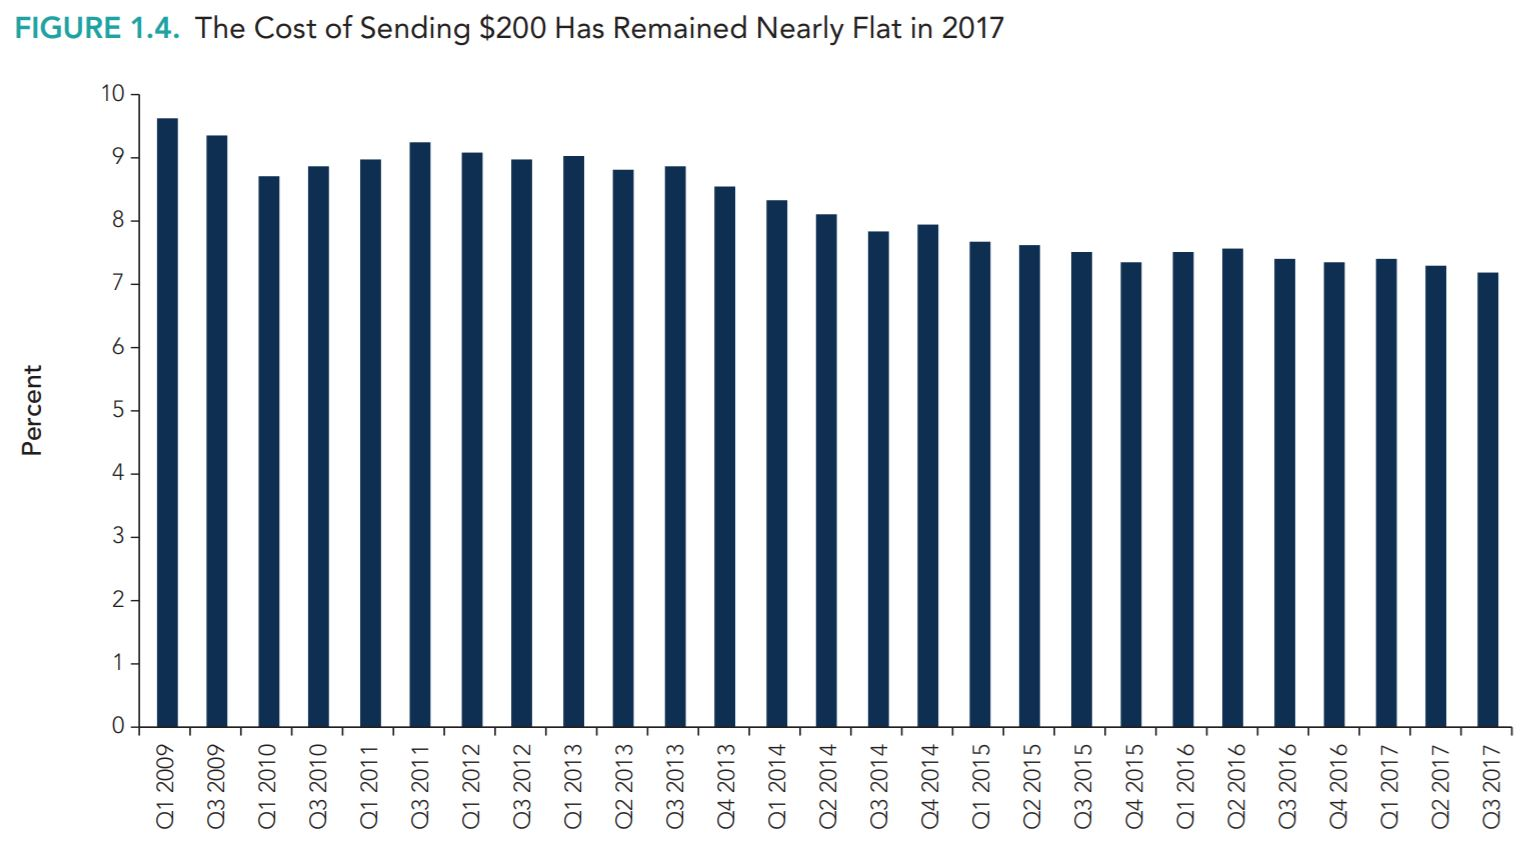 WorldBank Cost of Sending $200 till Q2 2017